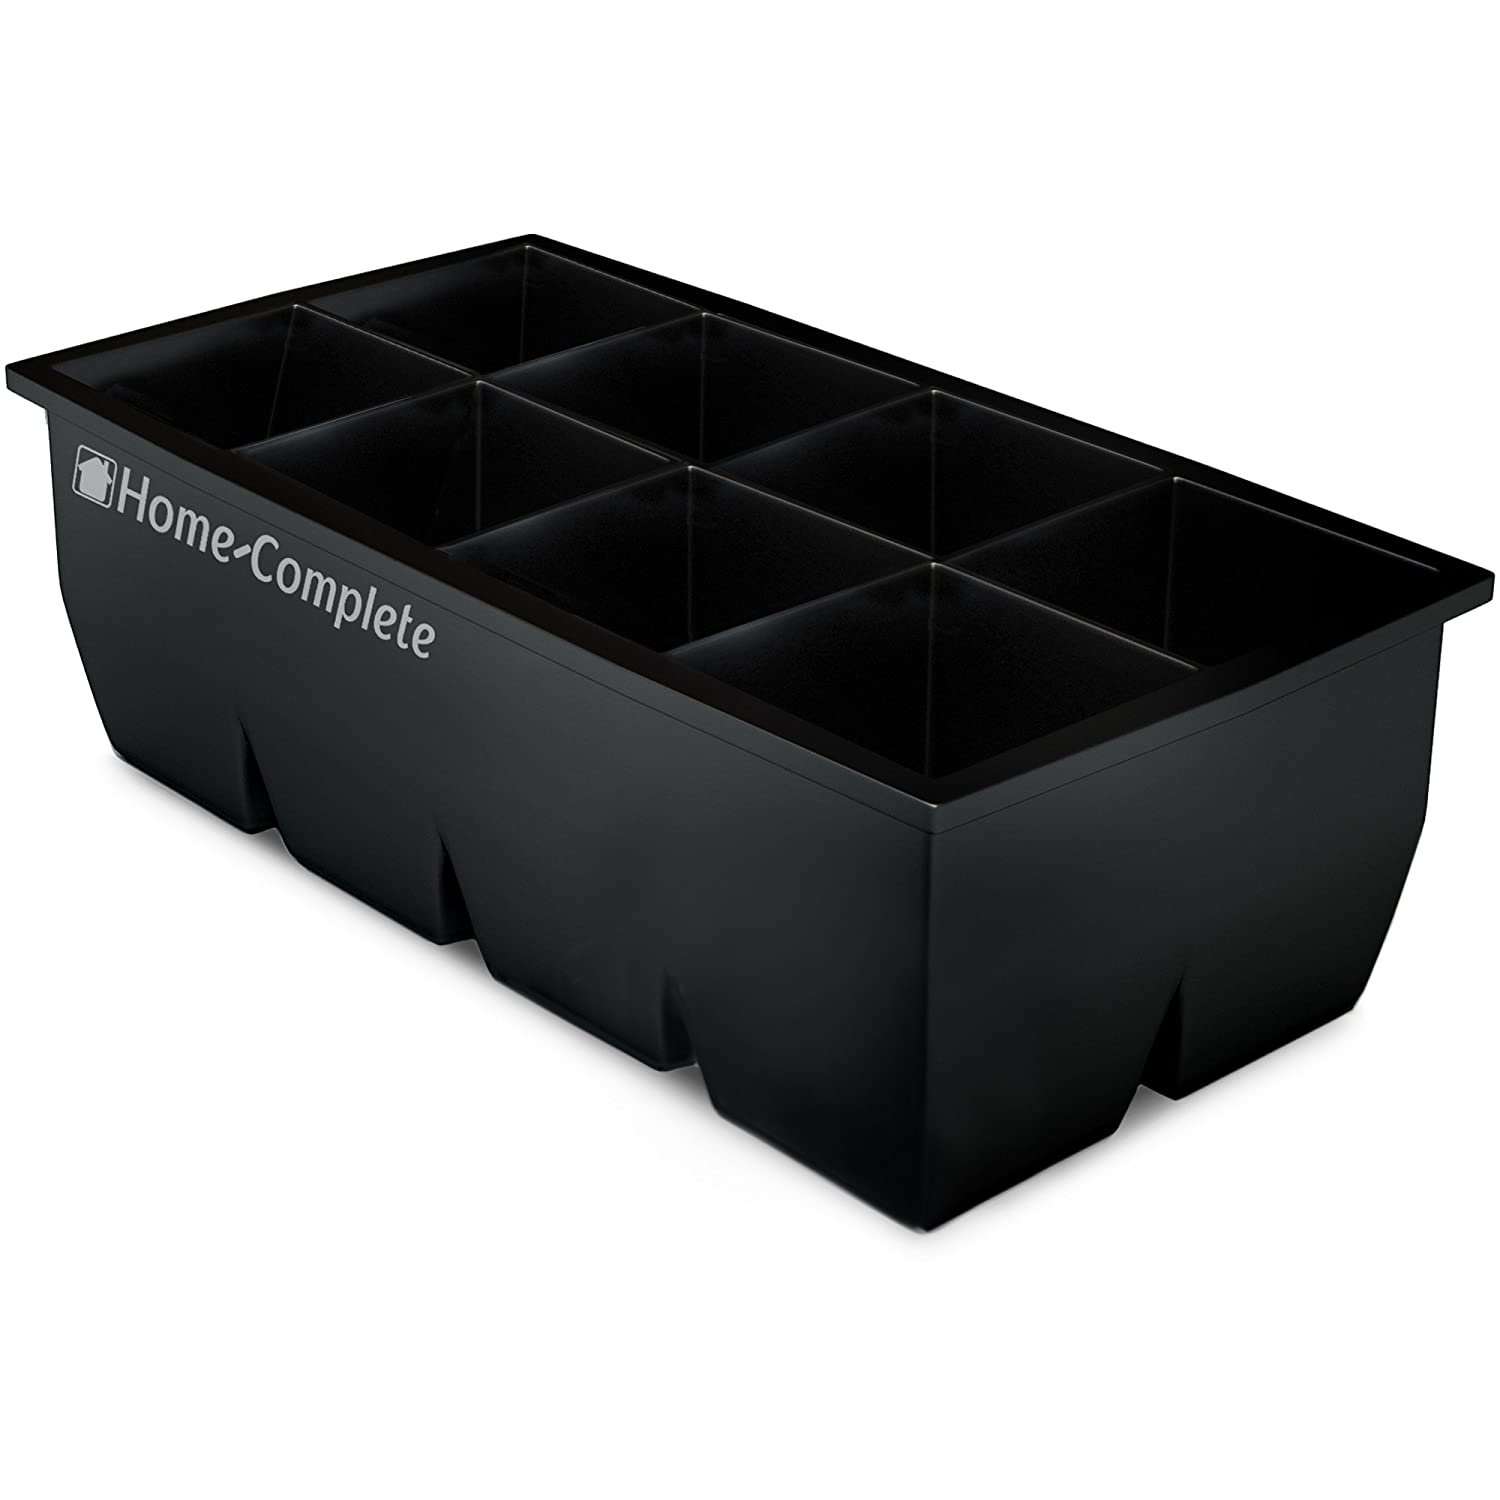 """Home-Complete Large Ice Cube Molds-Silicone Tray Makes 8, 2""""x2"""" Big Cubes-BPA-Free and Flexible-Chill Water, Lemonade, Cocktails, Or Any Beverage"""